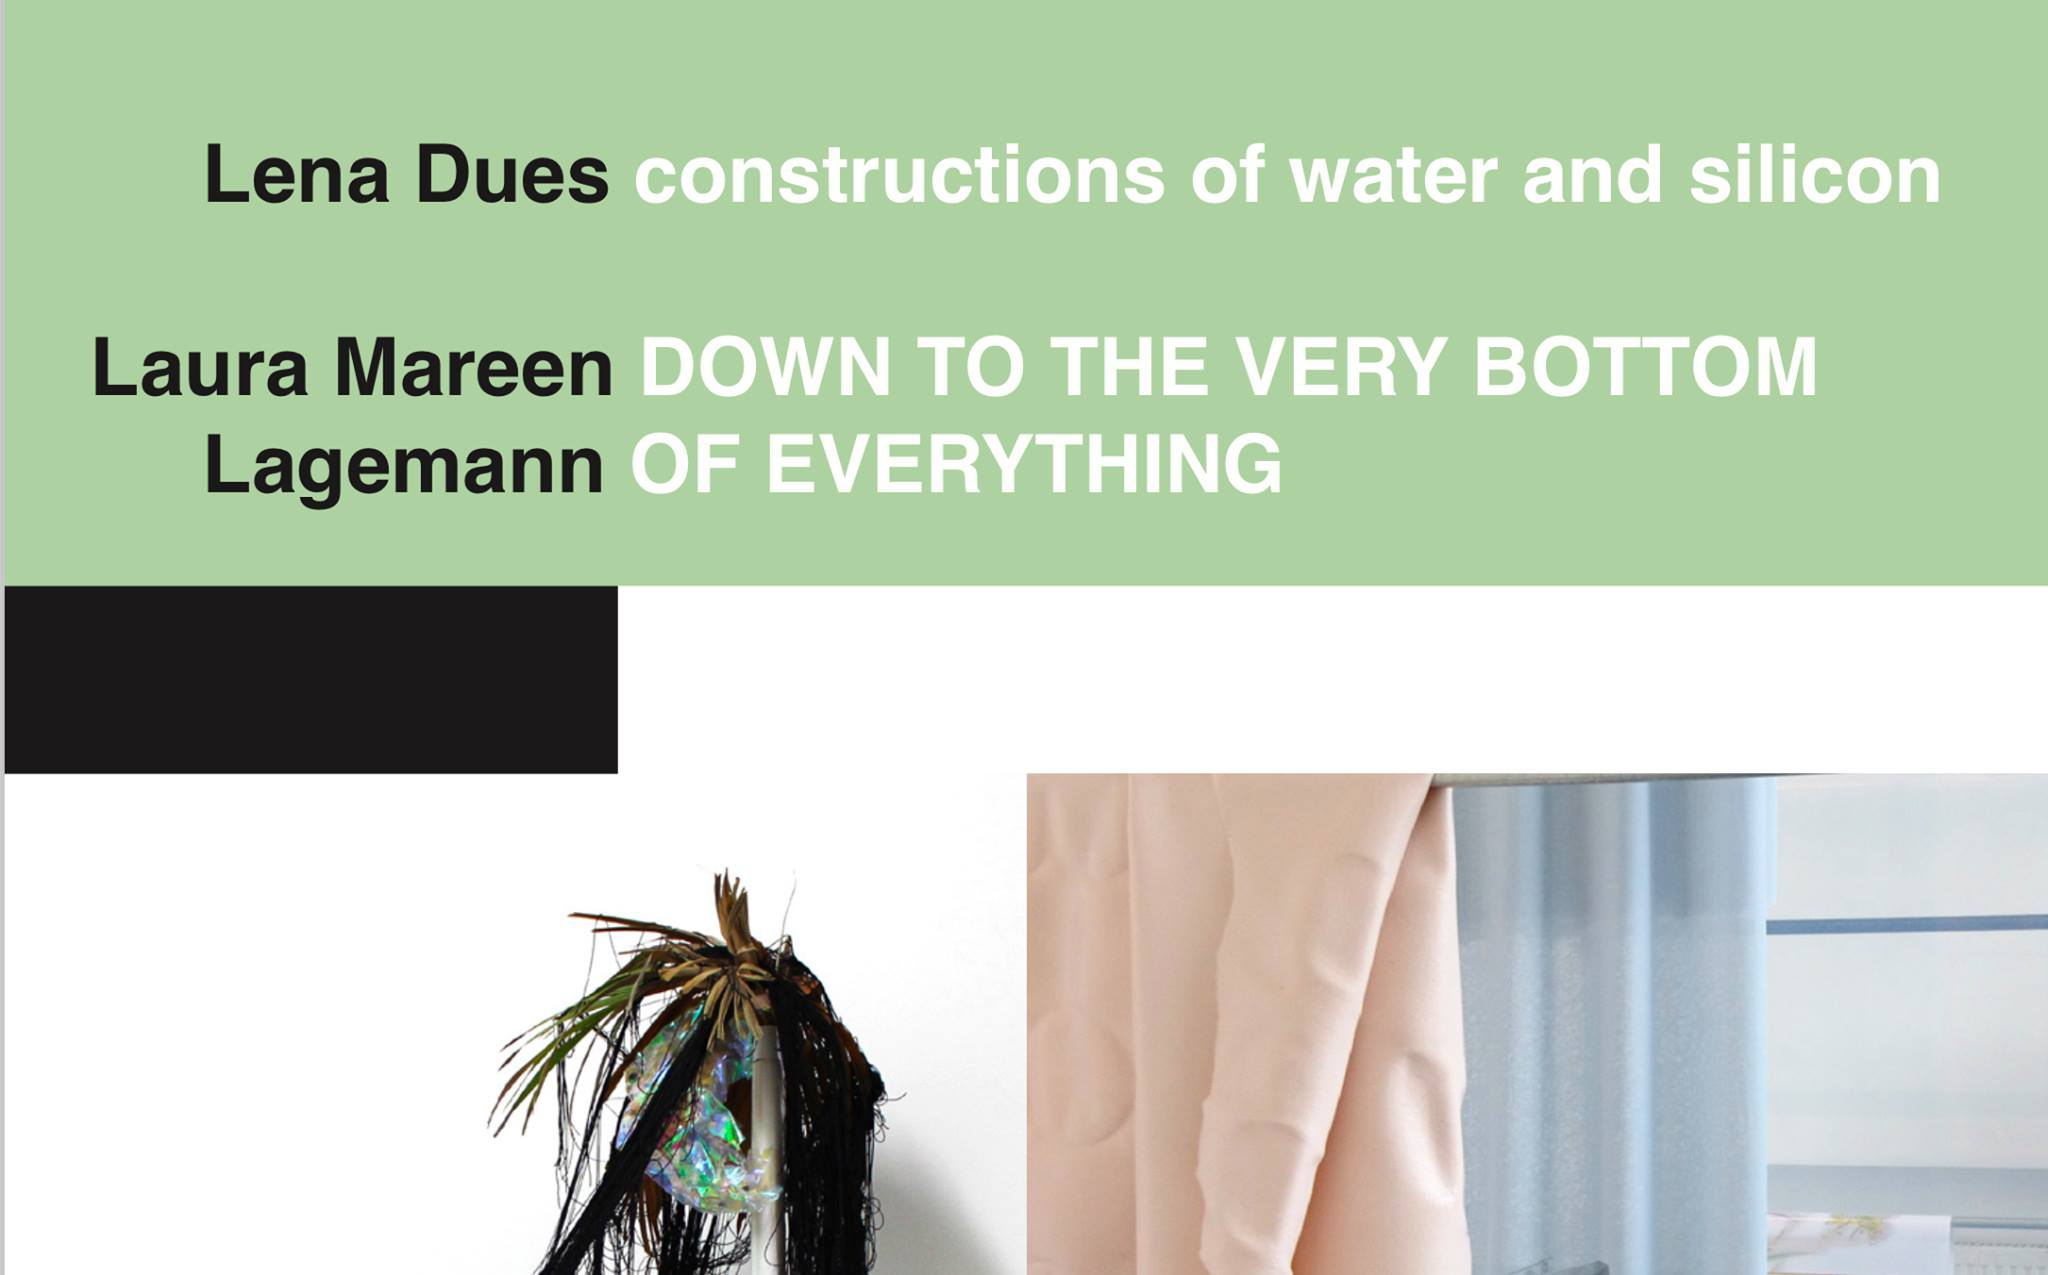 Eventbild für Lena Dues und Laura Mareen Lagemann /// constructions of water and silicon /// DOWN TO THE VERY BOTTOM OF EVERYTHING